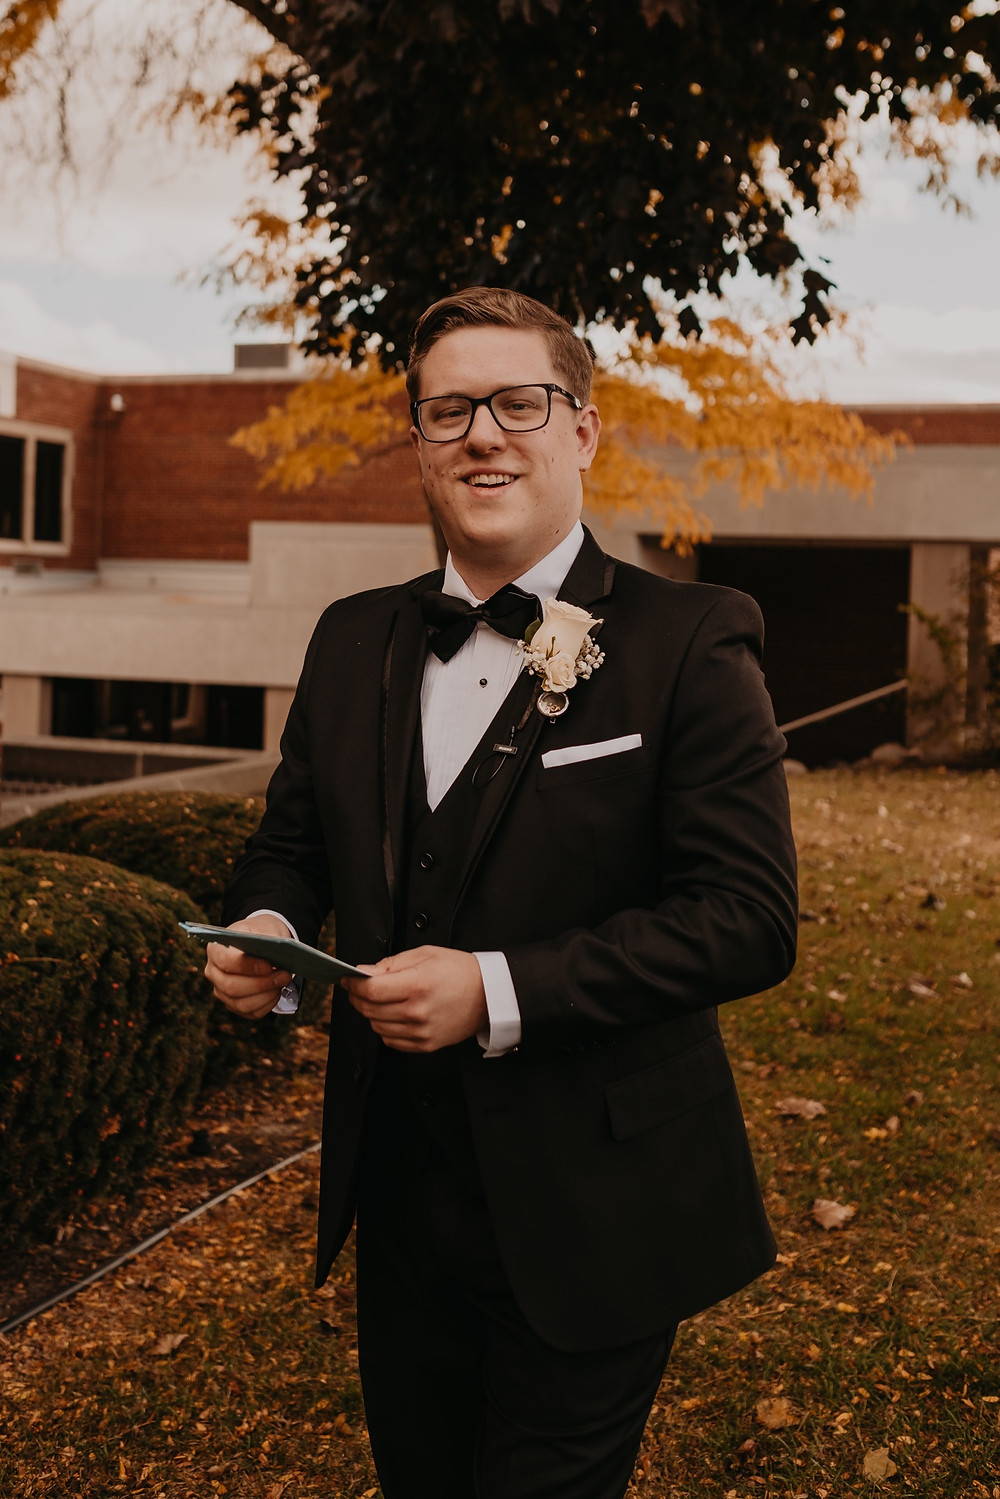 Groom portrait with handwritten card from bride. Photographed by Nicole Leanne Photography.